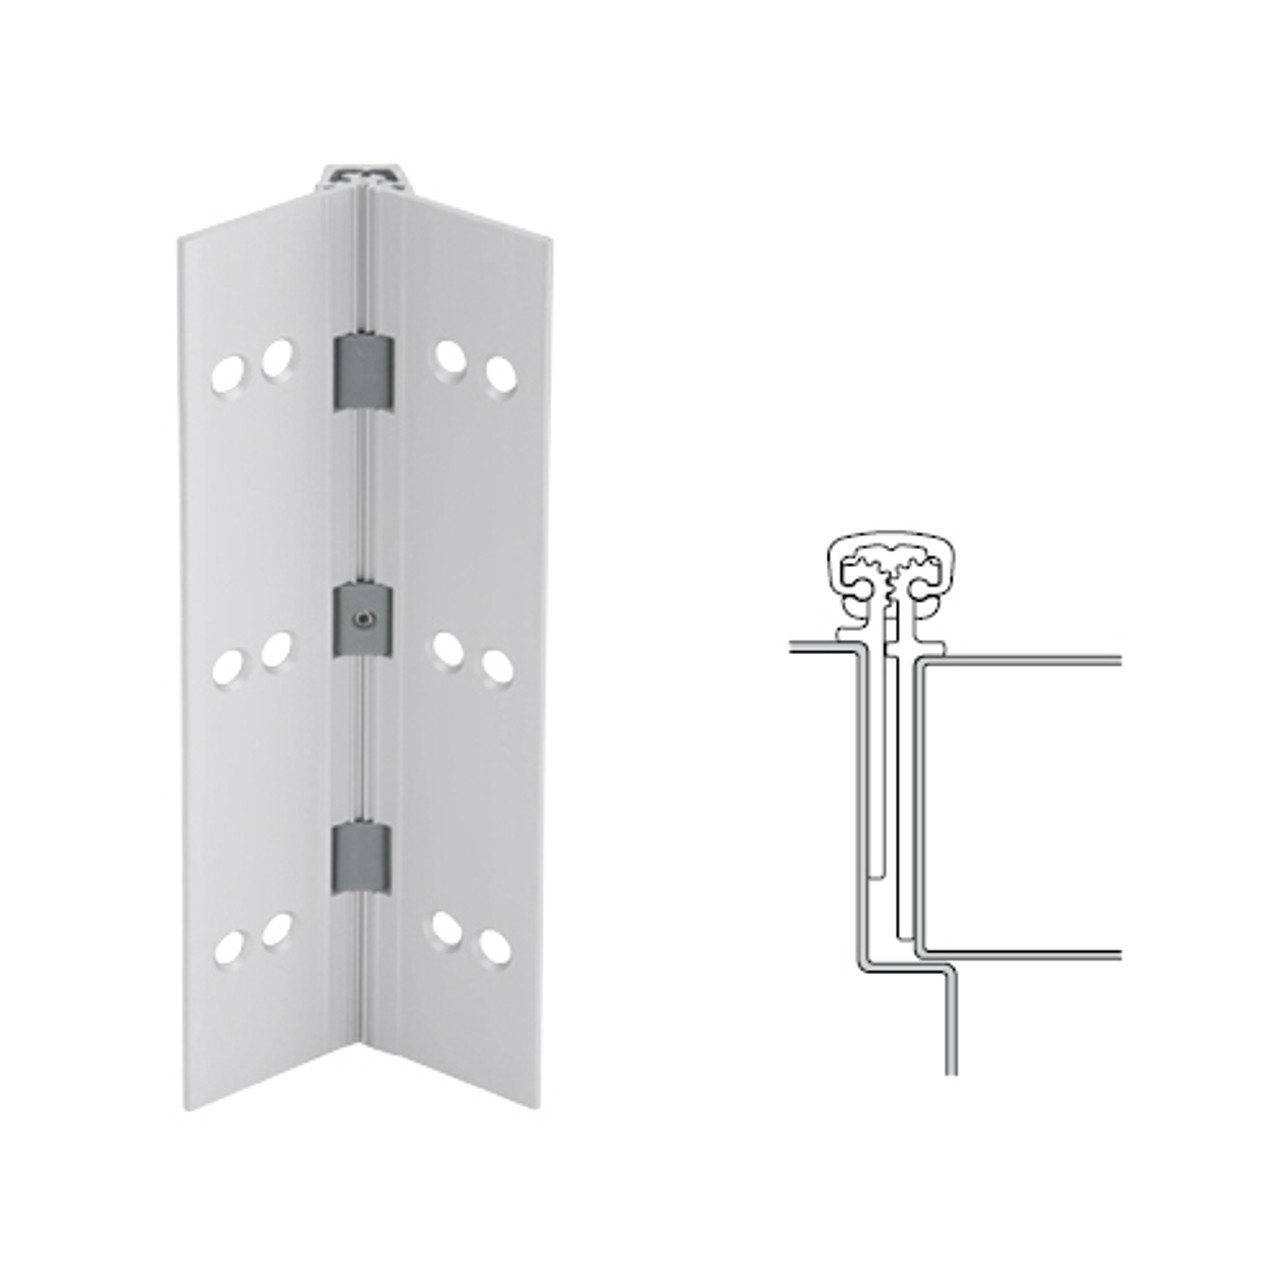 026XY-US28-120-SECWDHM IVES Full Mortise Continuous Geared Hinges with Security Screws - Hex Pin Drive in Satin Aluminum